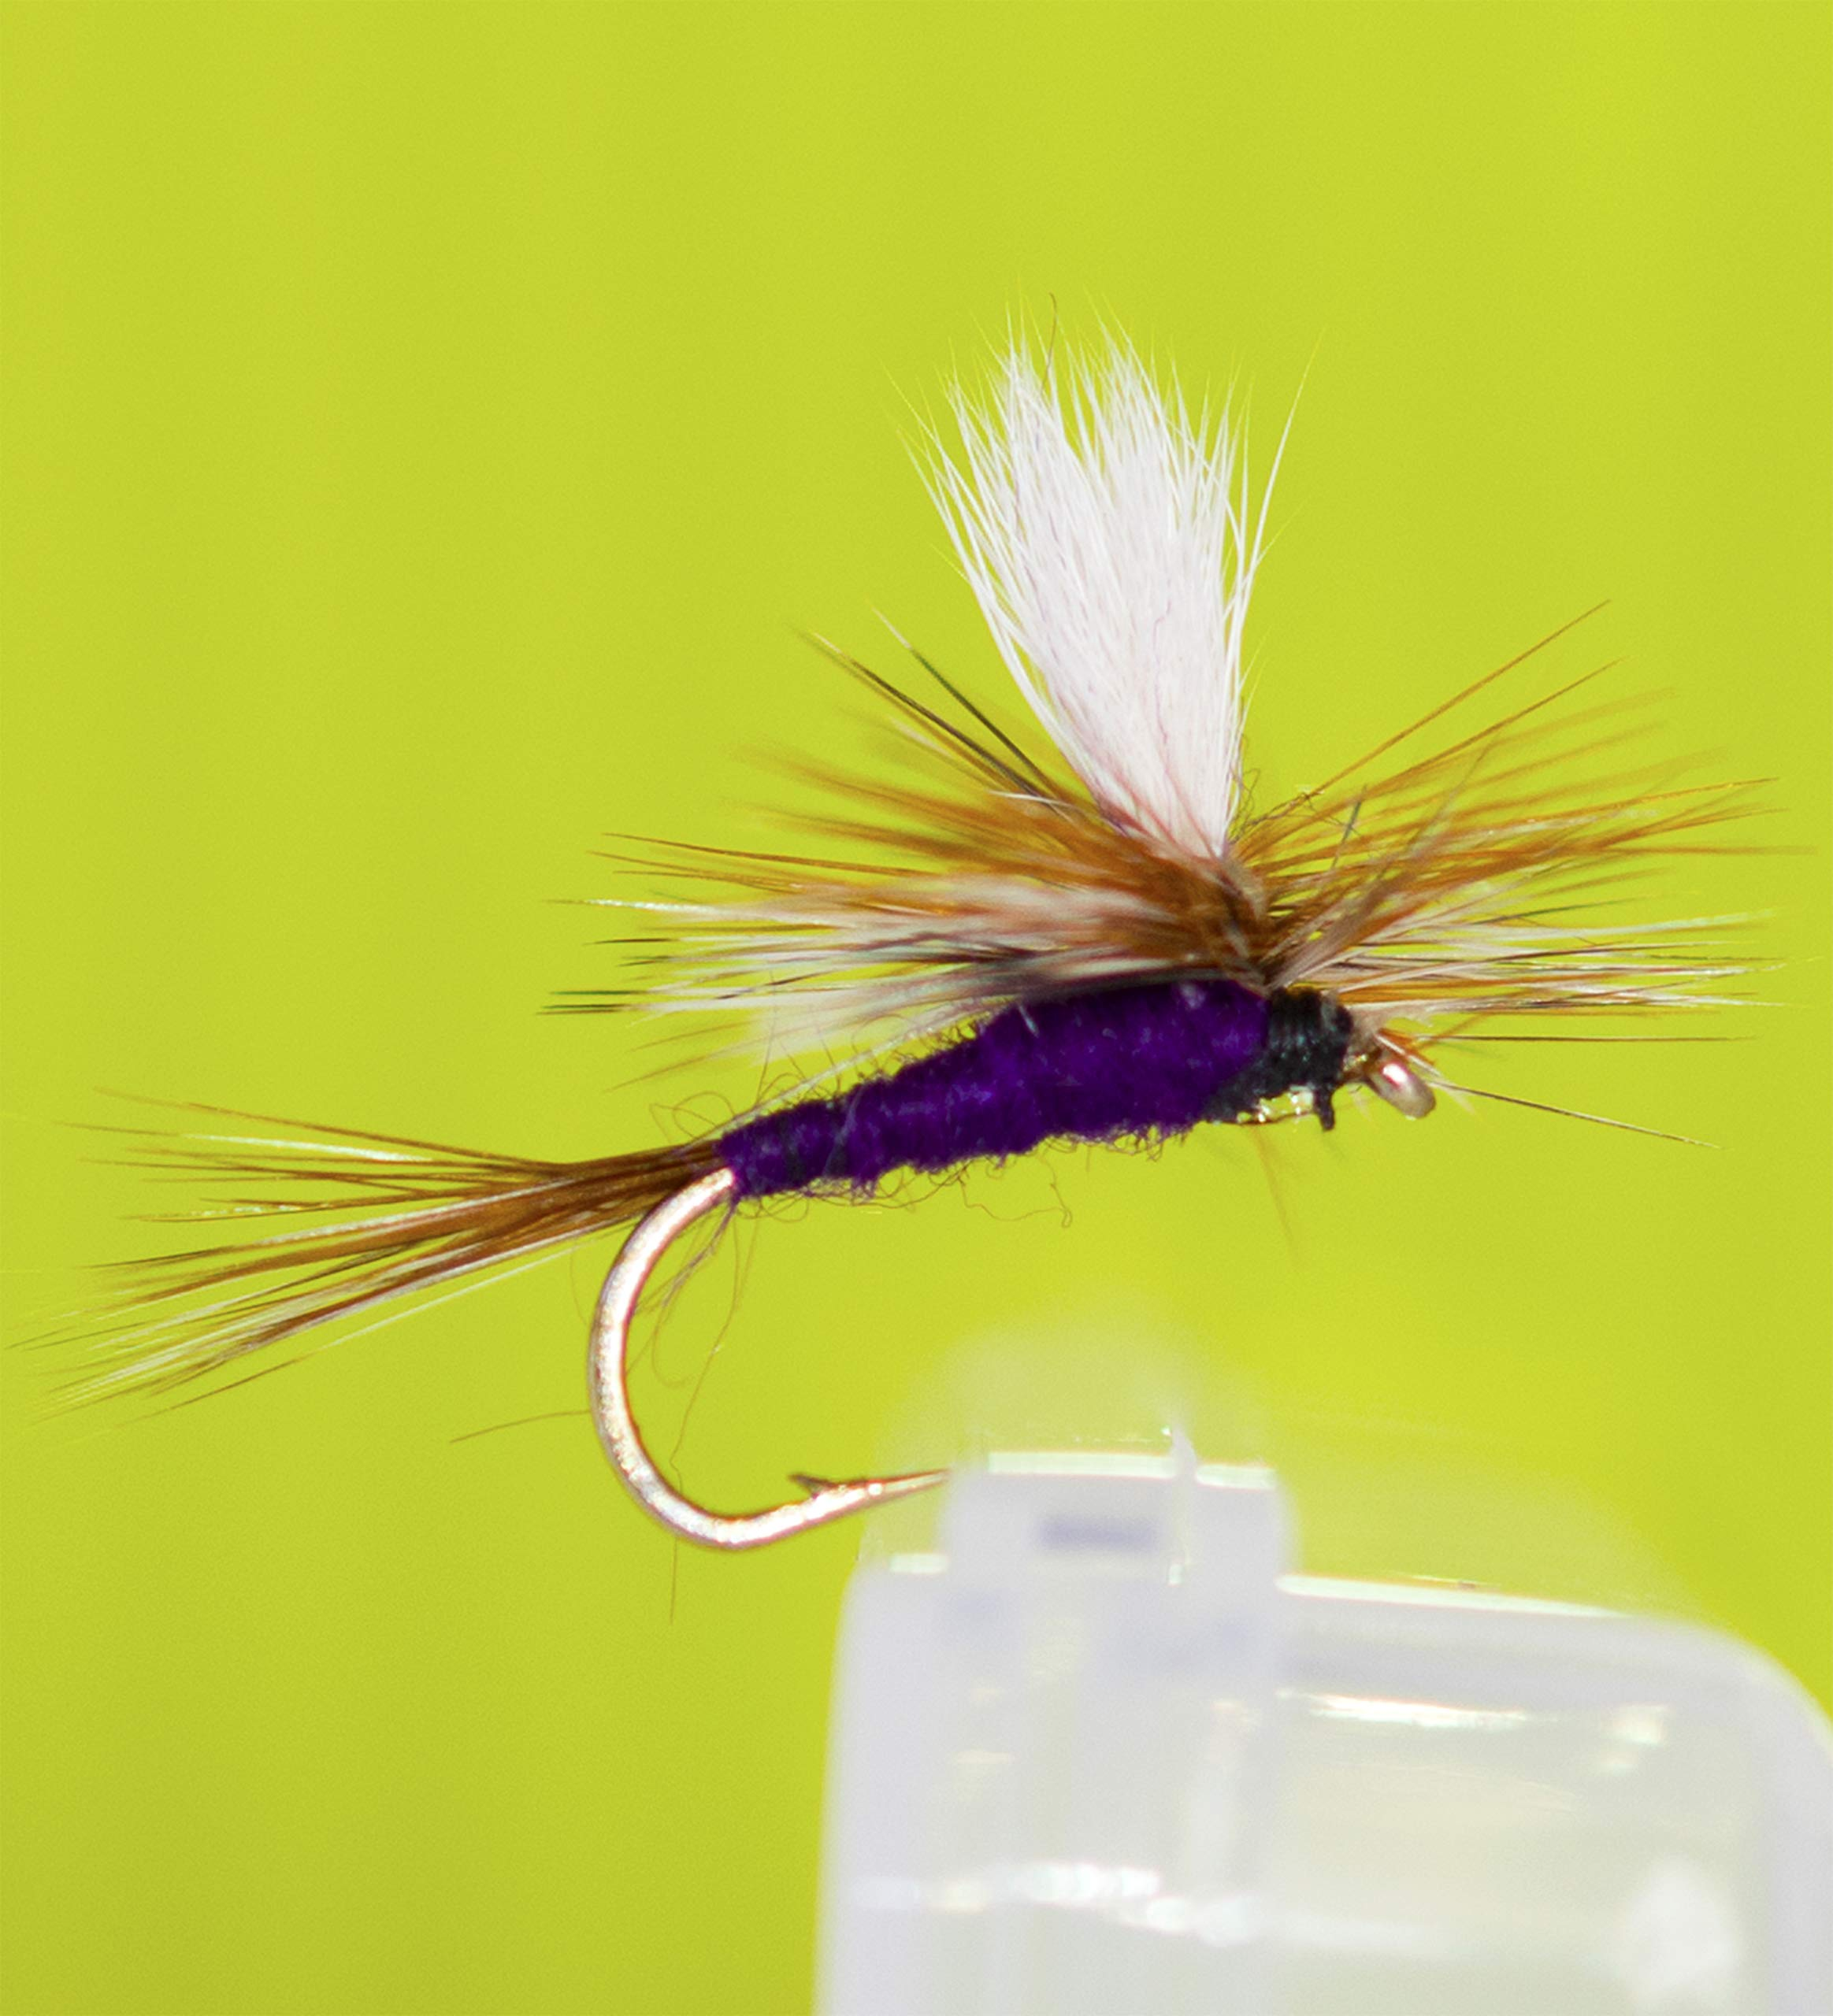 Outdoor Planet 12 Adams Purple Parachute Dry Flies Trout Flies Lure Assortment for Trout Fly Fishing Flies by Outdoor Planet